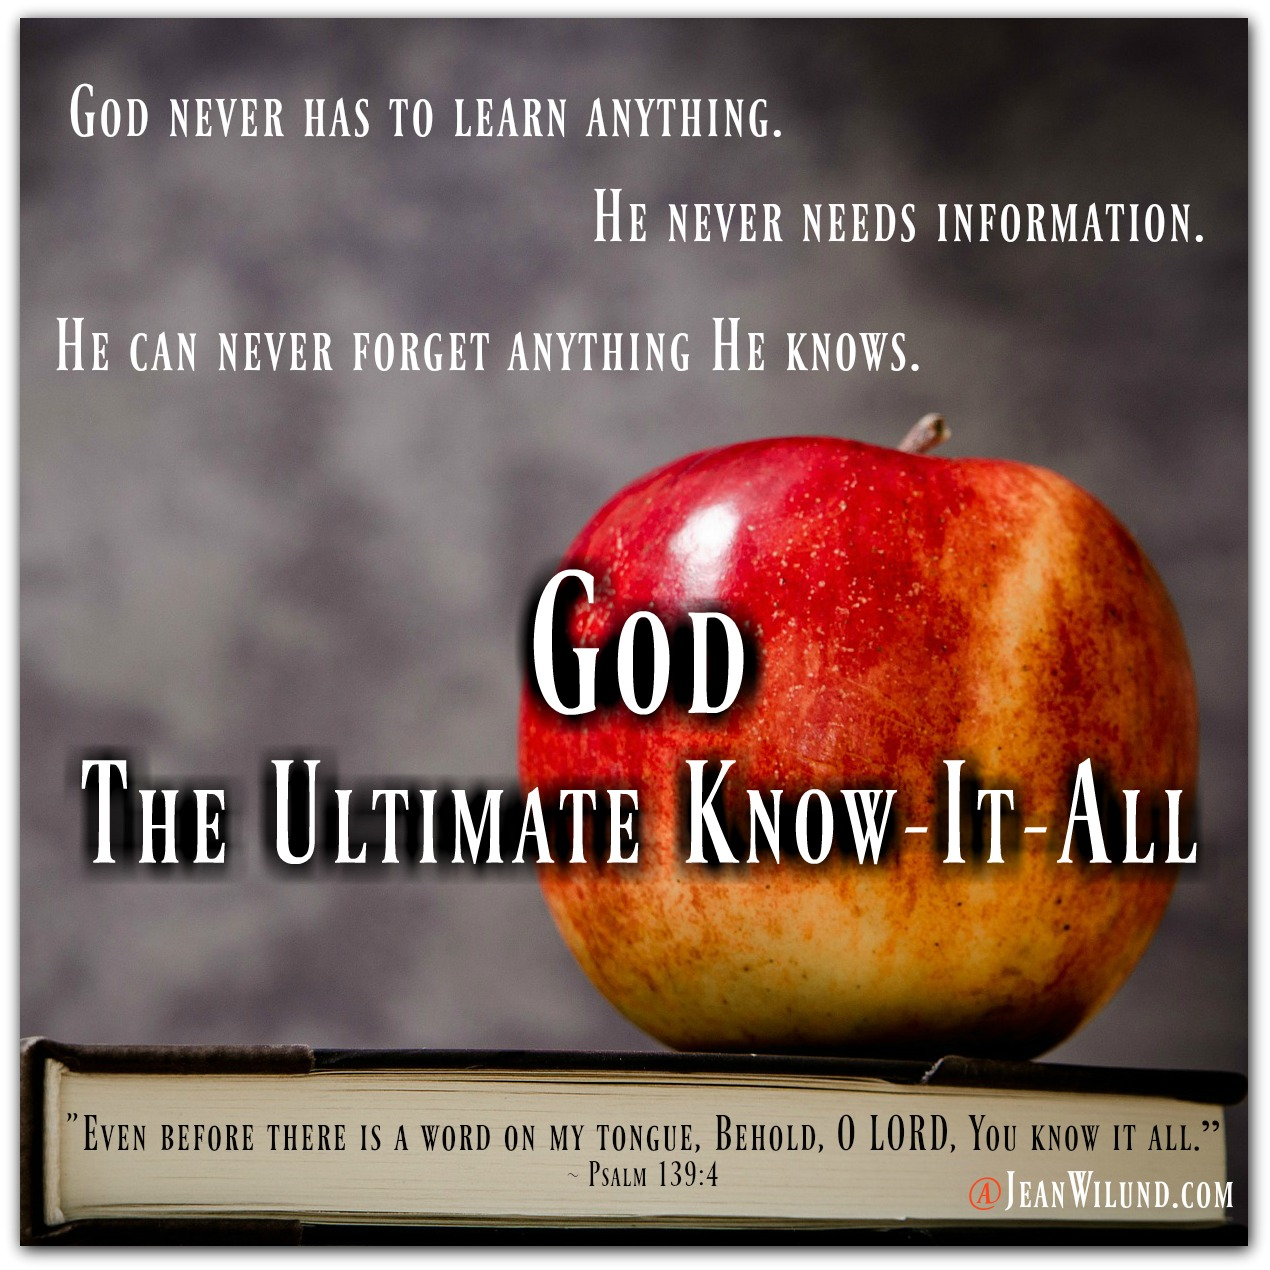 God - The Ultimate Know-It-All (From the Never-Ending, Ever-Growing List of the Character Traits of God) via www.JeanWilund.com